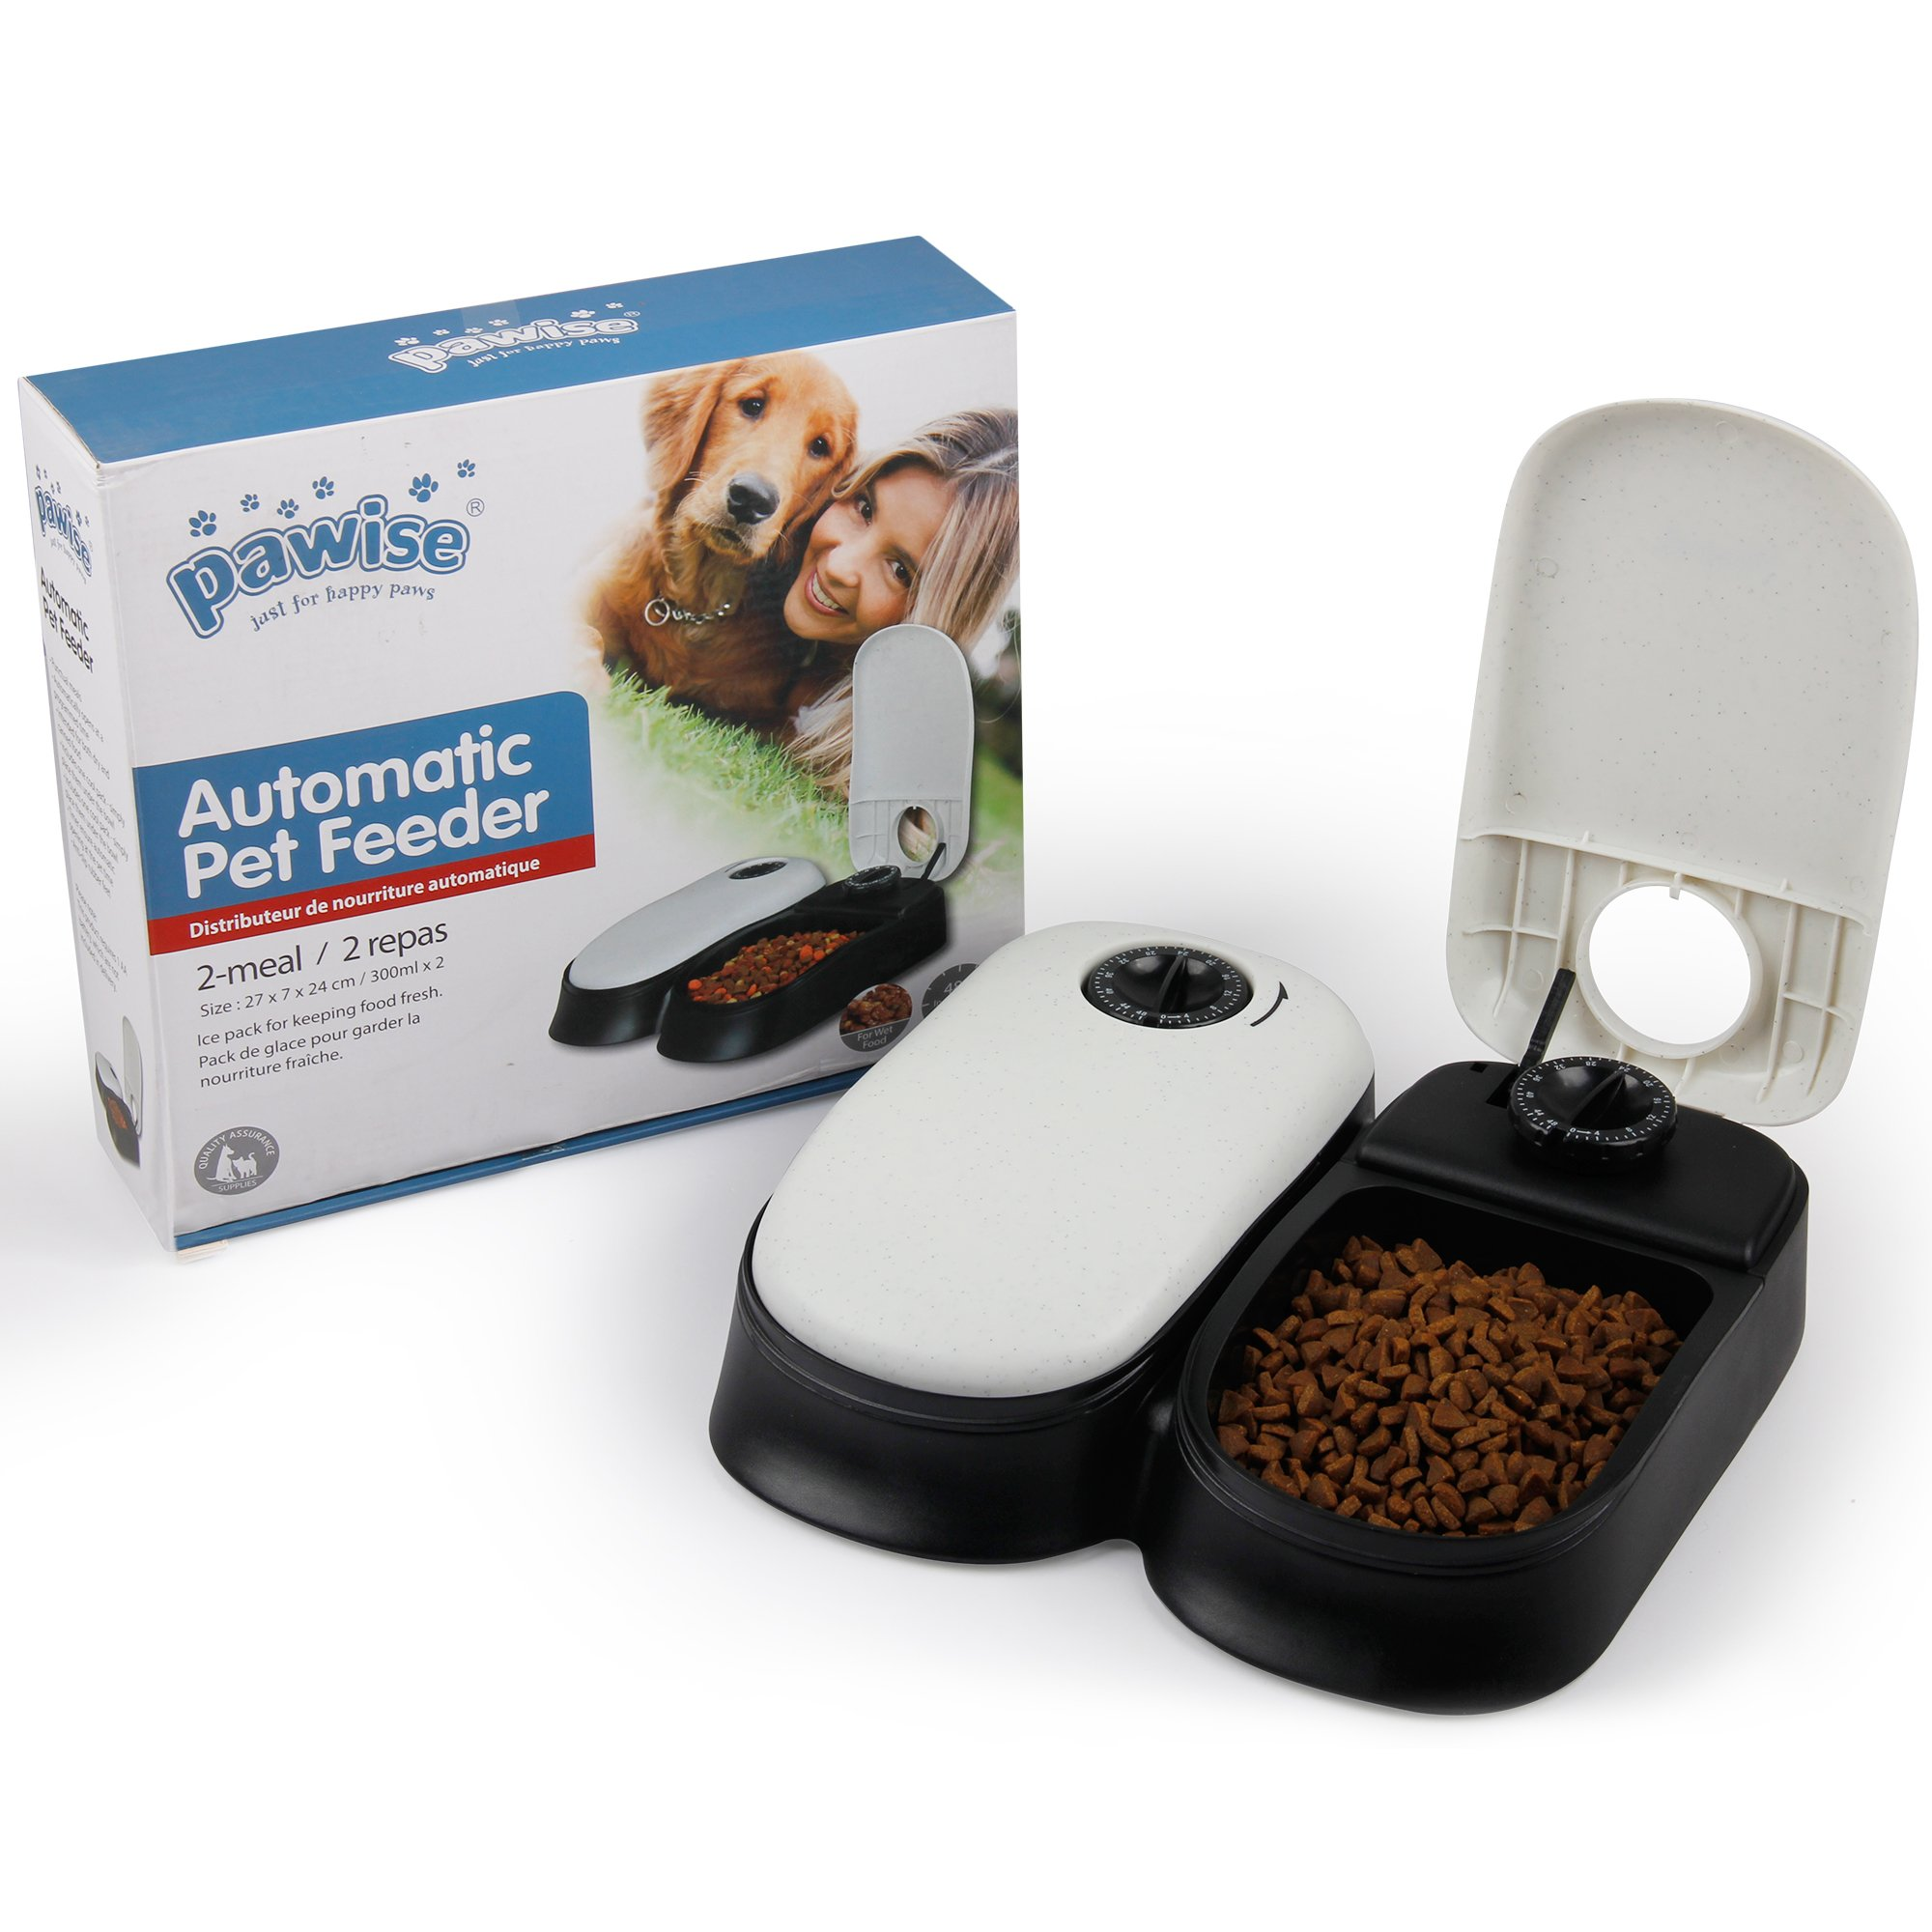 PAWISE Automatic Pet Feeder 2-Meal Food Dispenser Timed Food Bowl for Dogs Cats